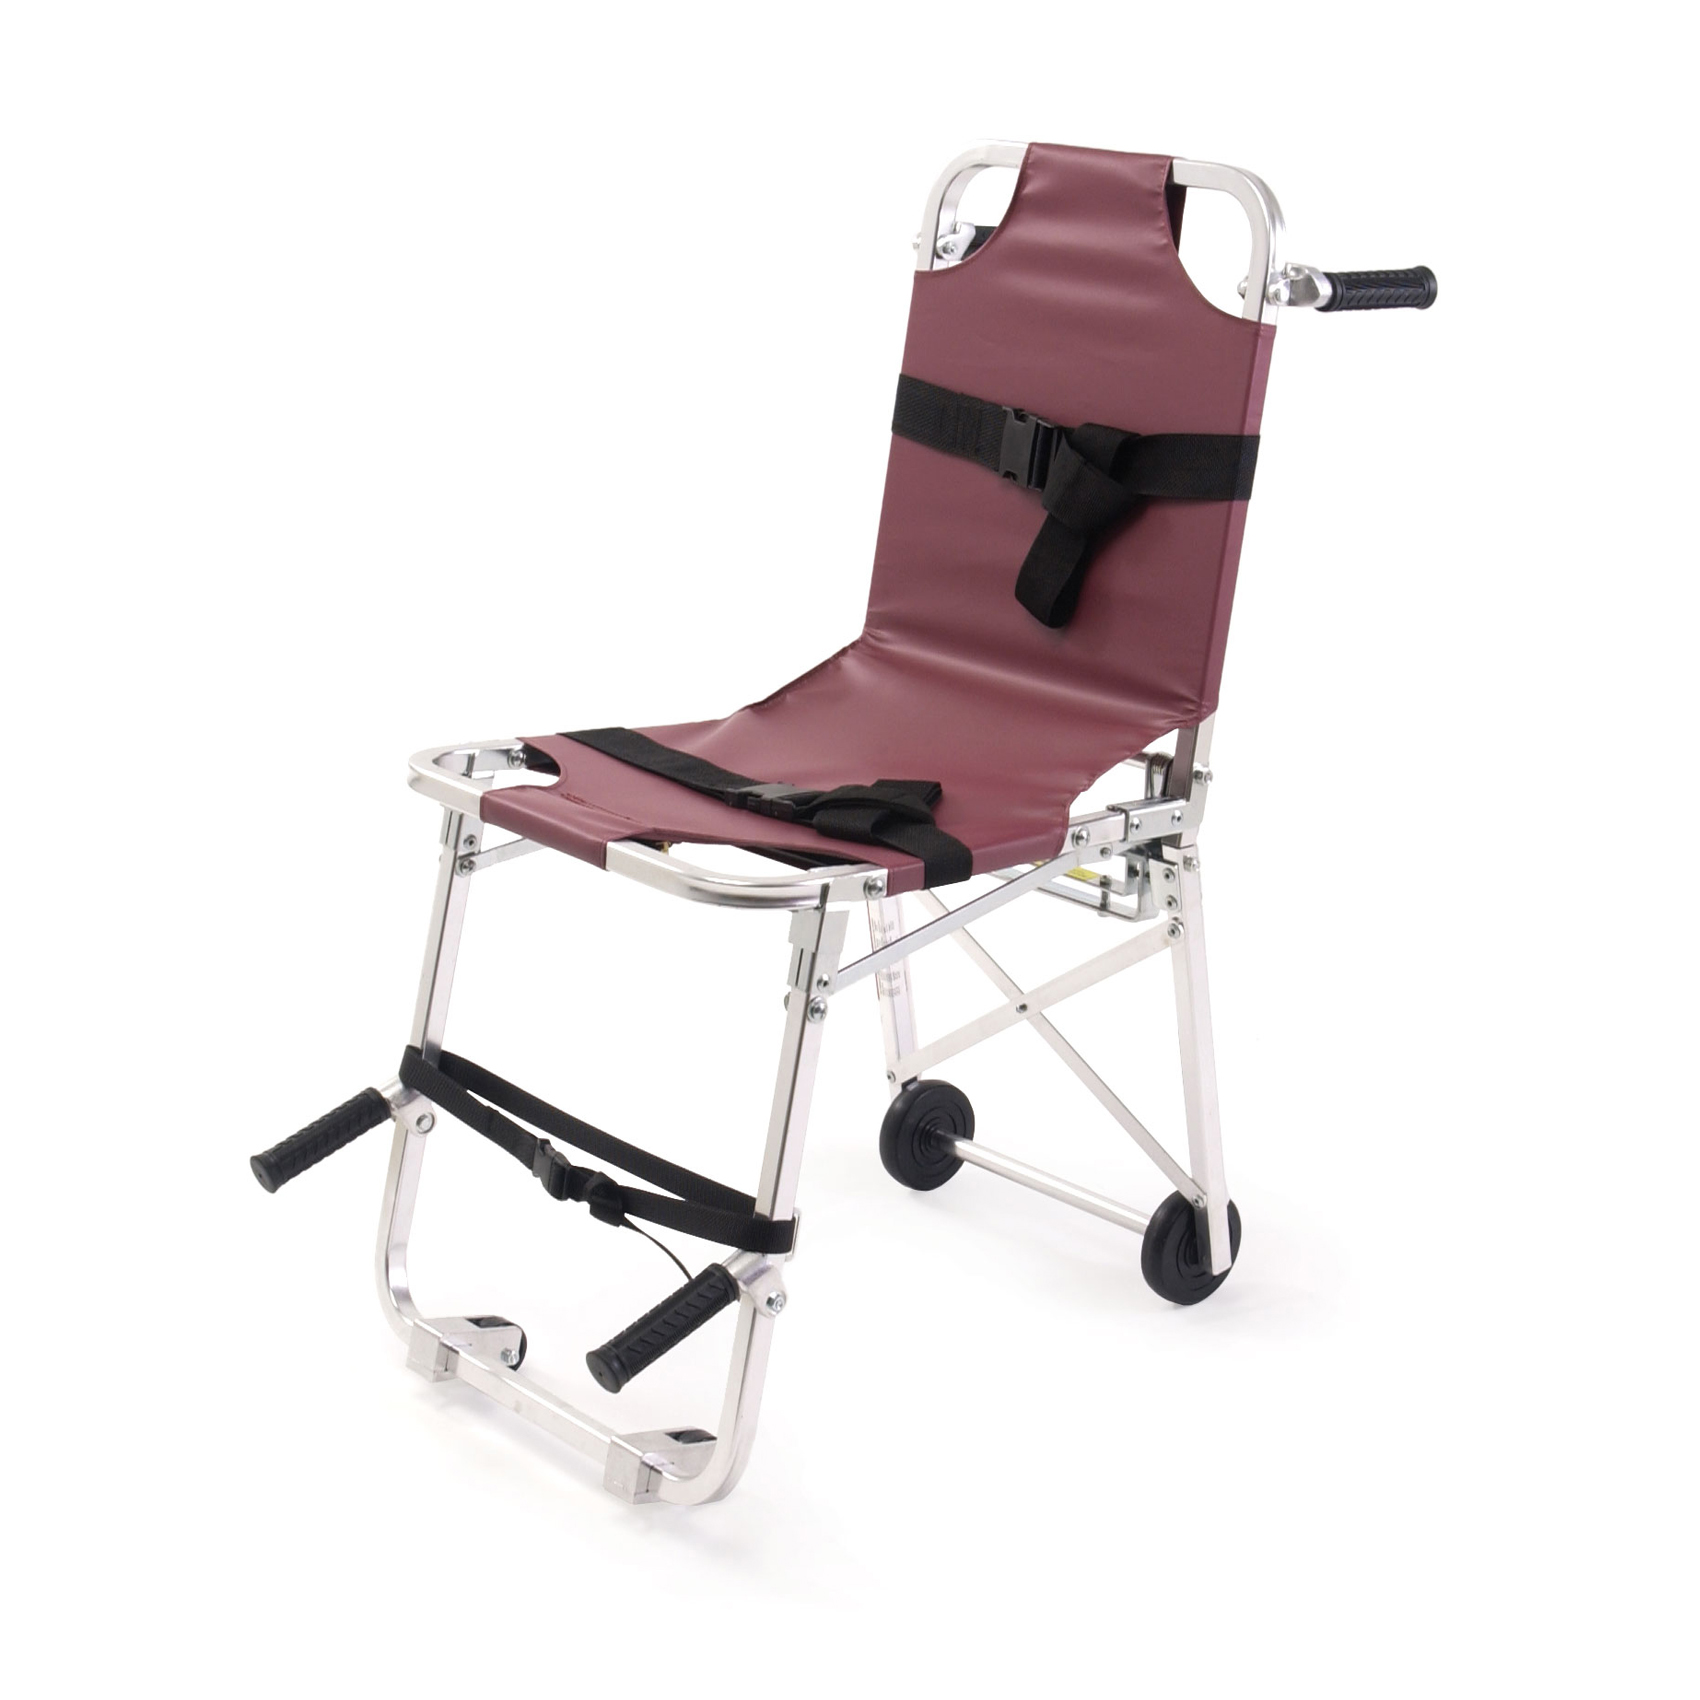 Stryker Stair Chair Ferno Model 42 Stair Chair Refurbished Stretchers